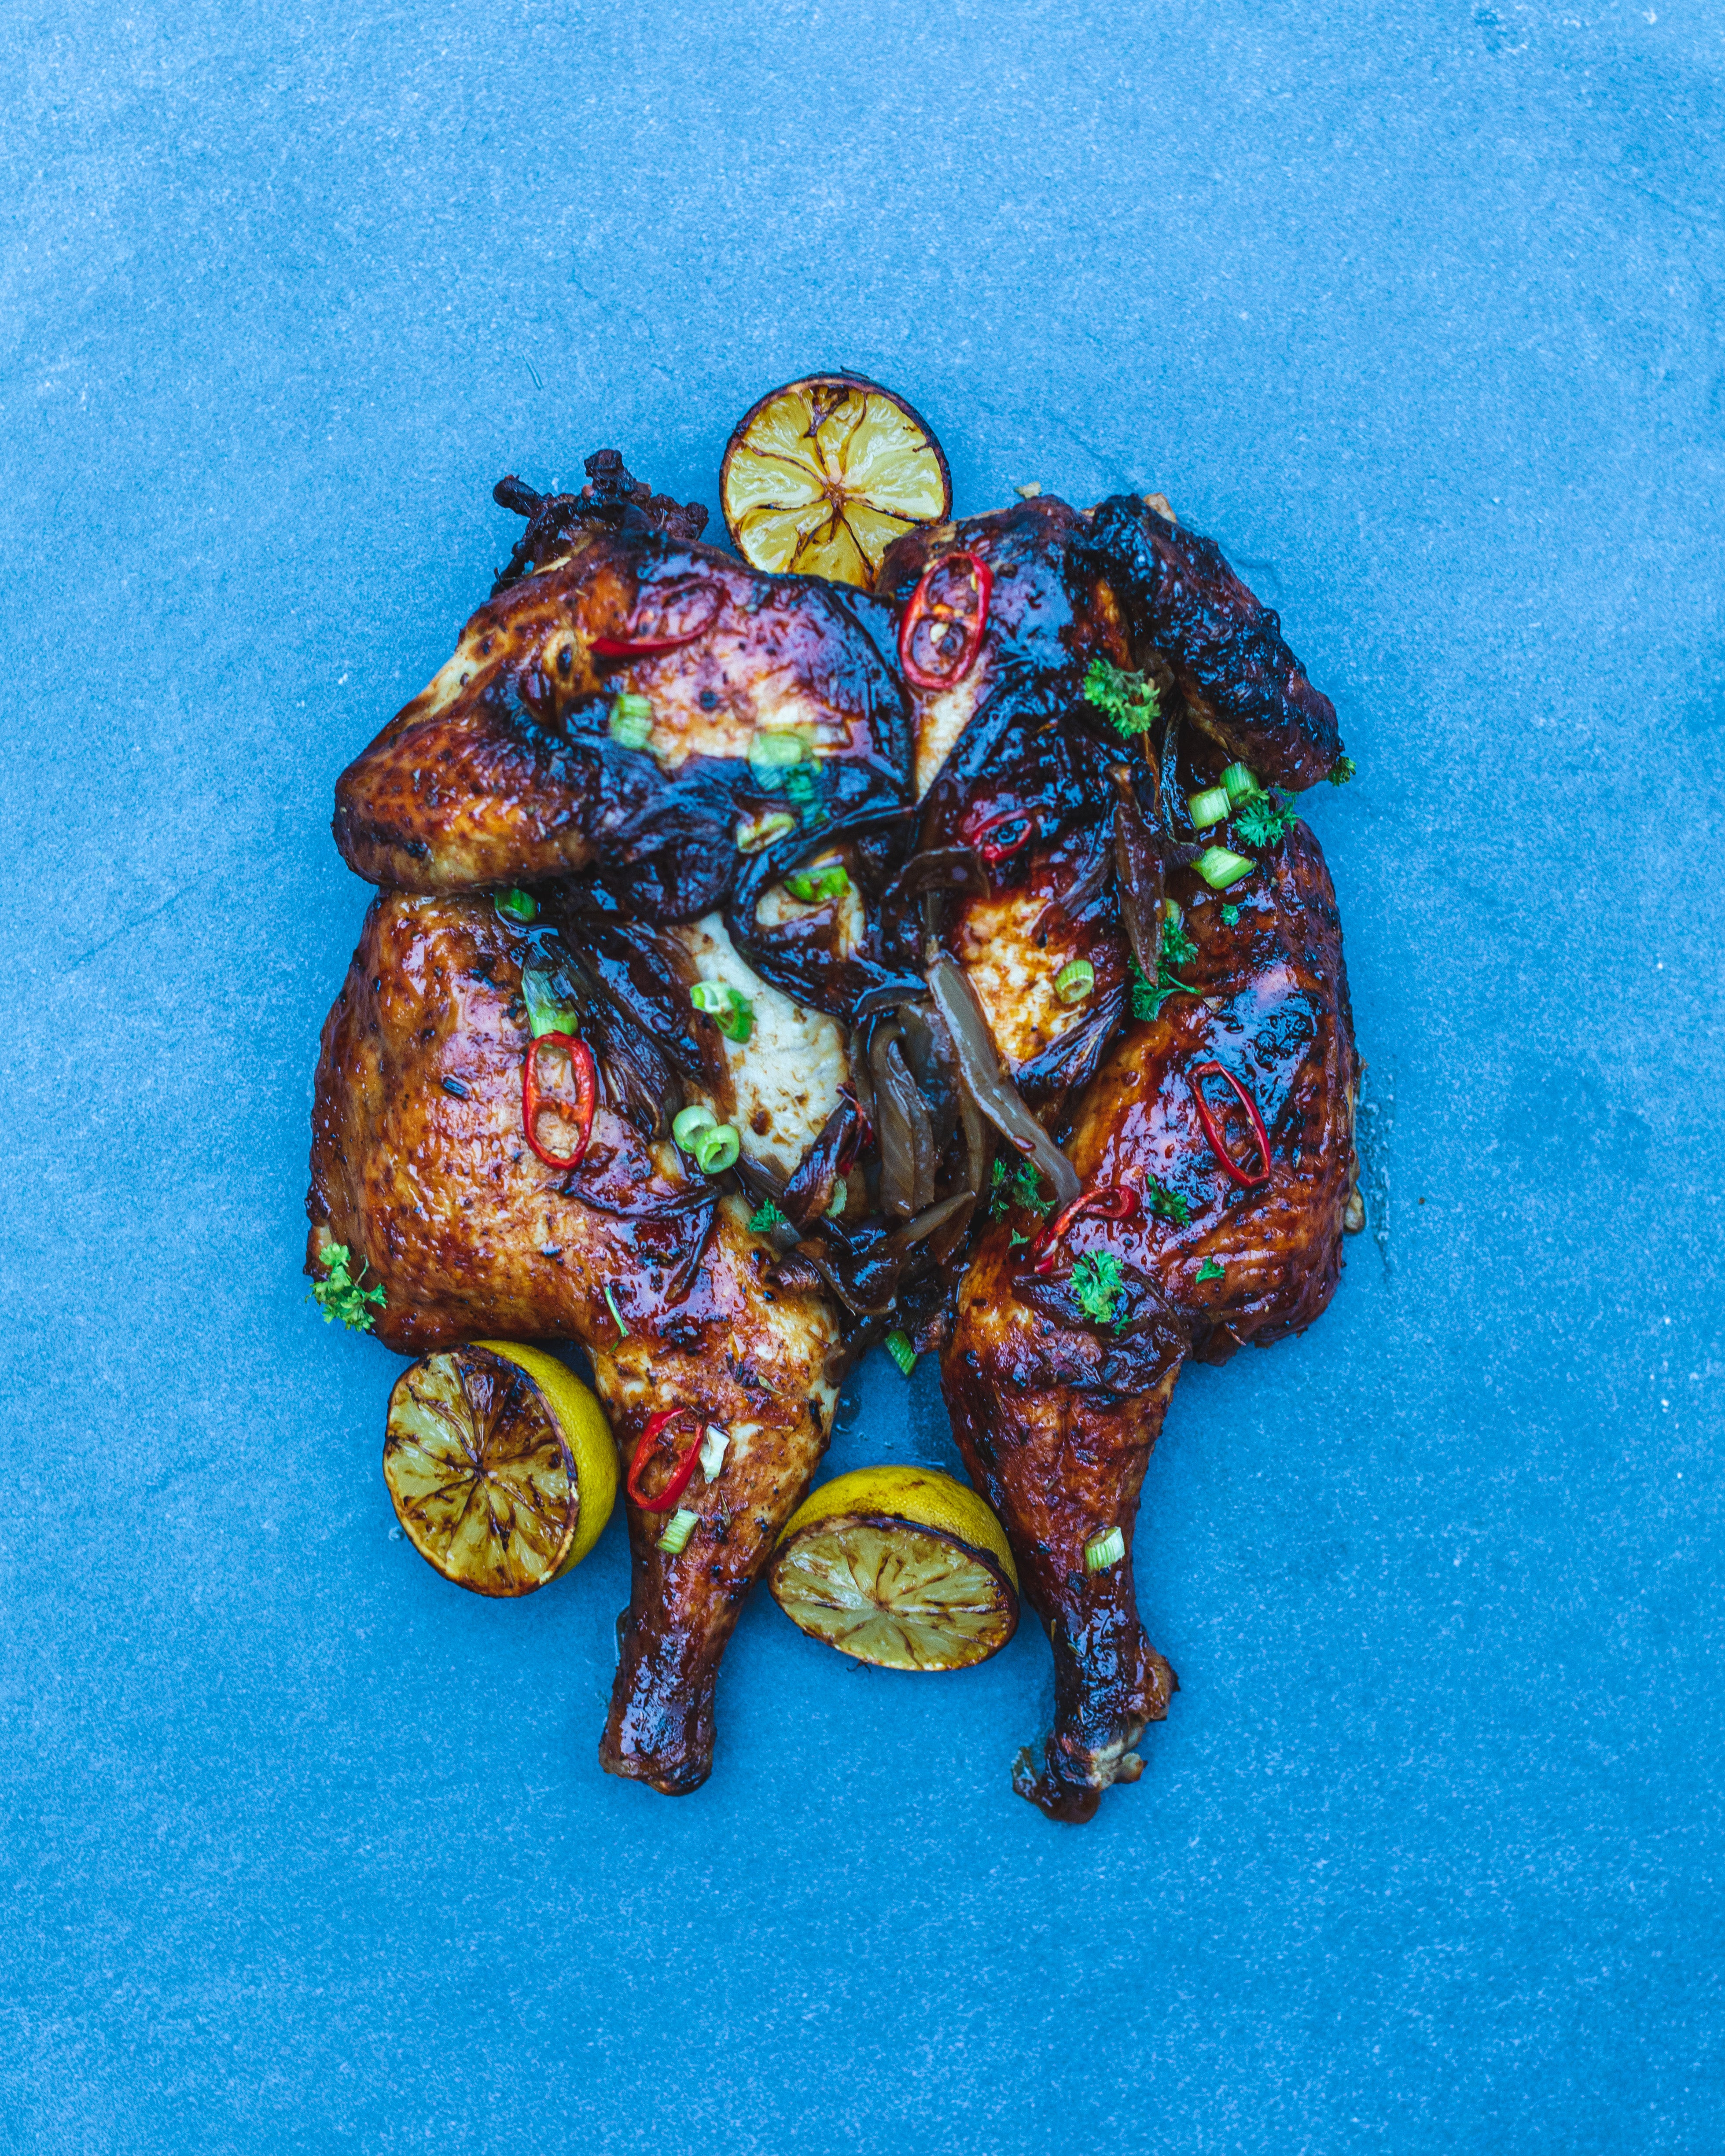 FAMILY HAMPER - LARGE CLASSIC ROASTED CHICKEN + DESSERT (SERVES 4 - £16 p/head)